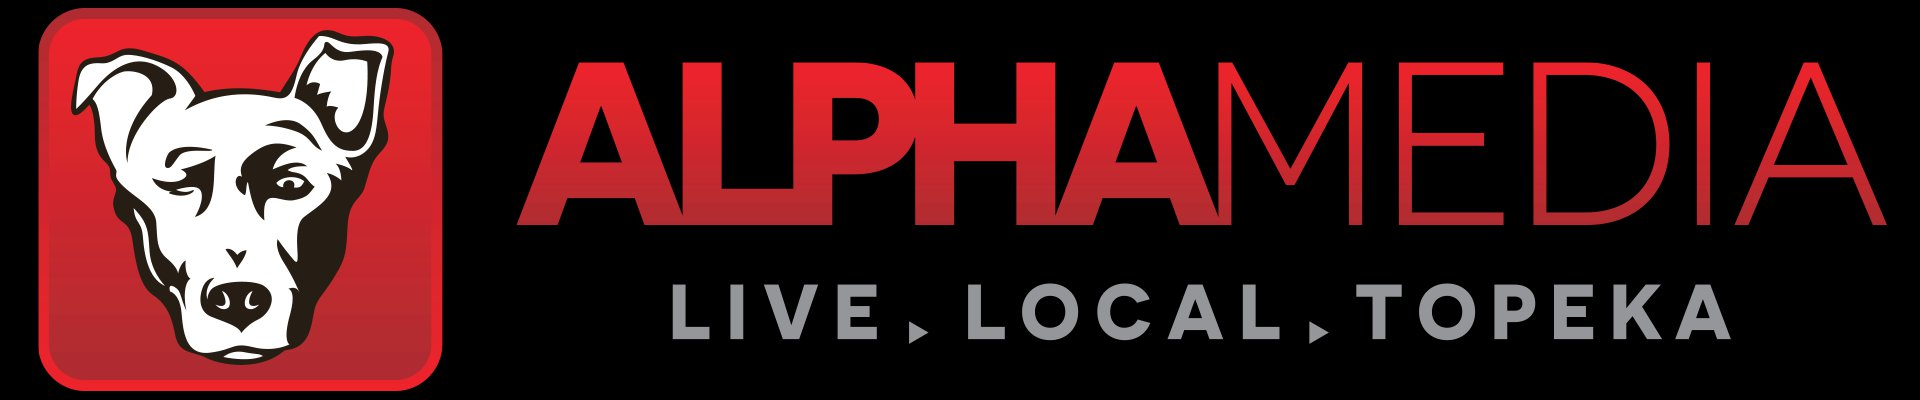 alphamedia-topeka-black-background